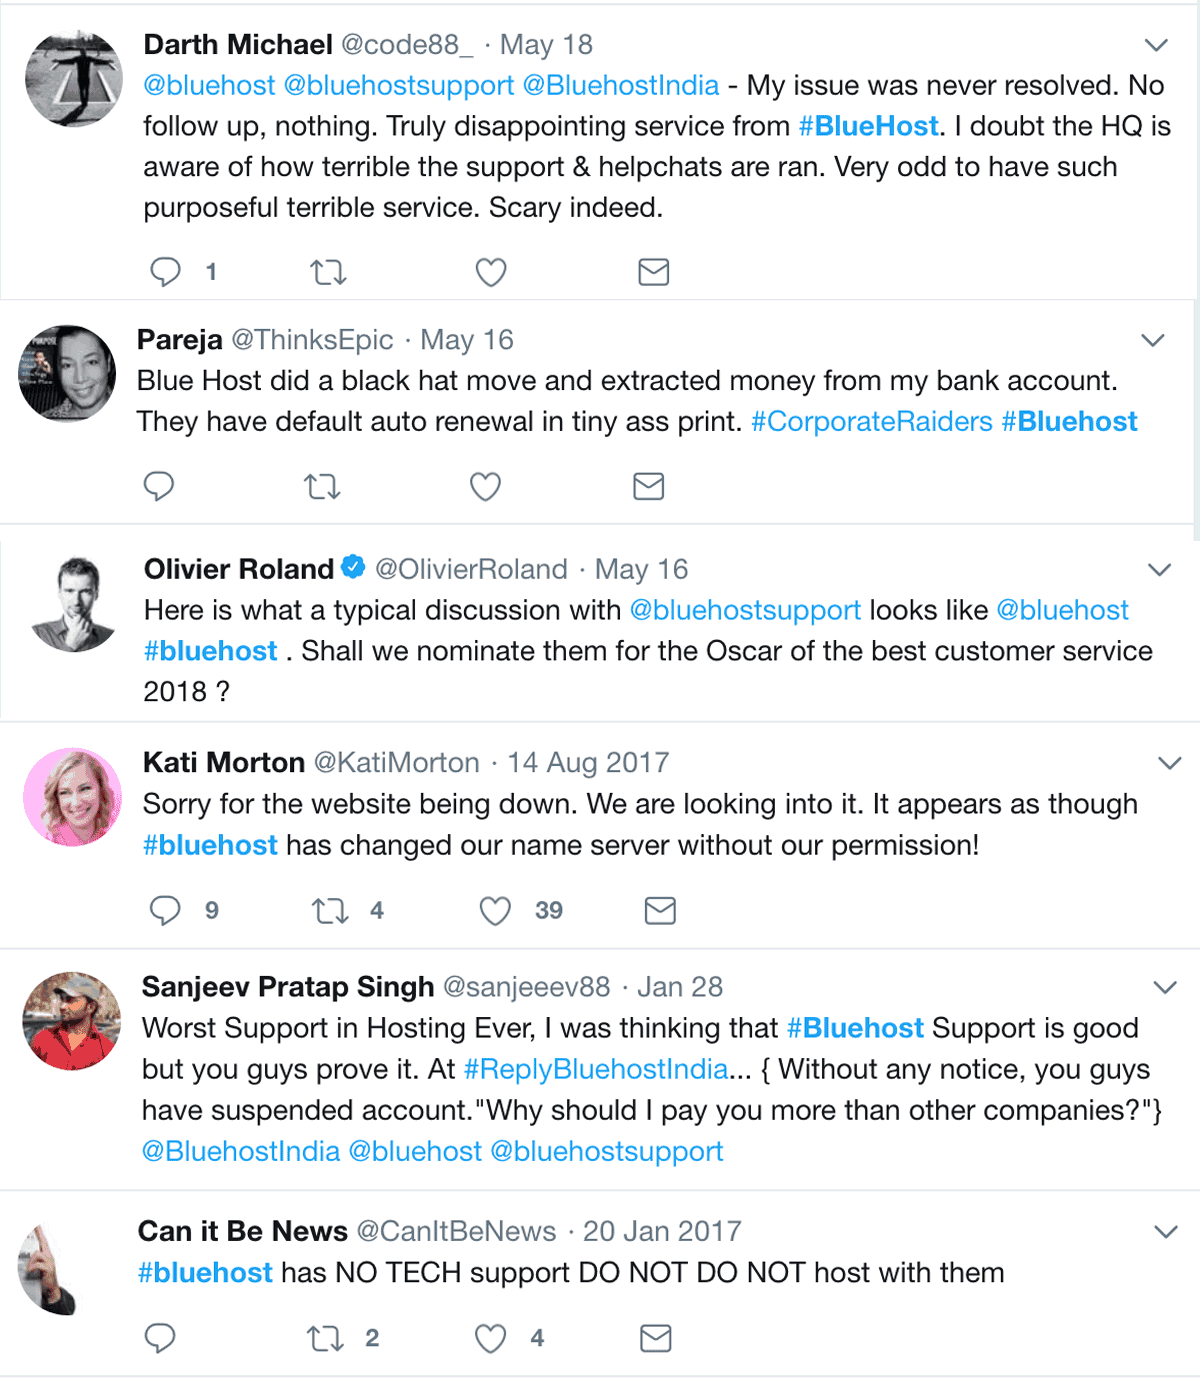 Twitter Opinion on Bluehost